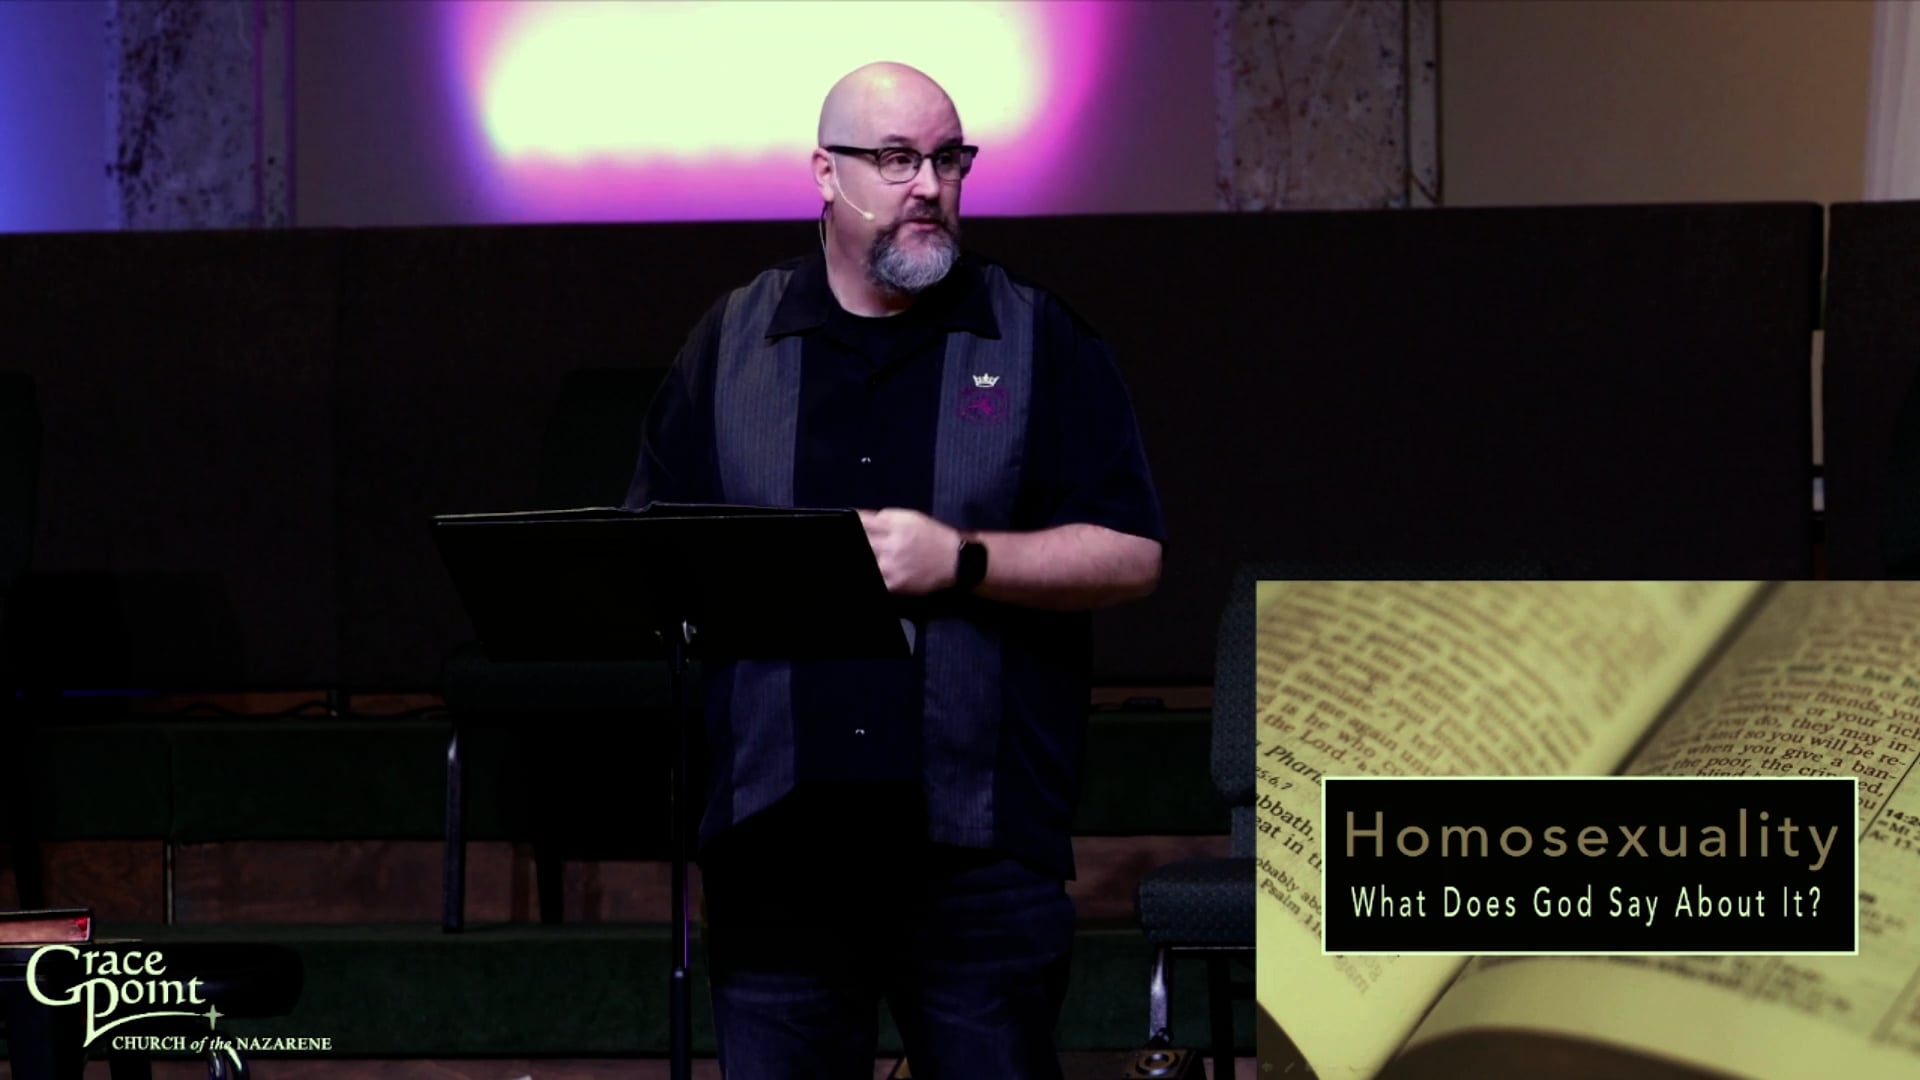 Homosexuality: What Does God Say About It?   Rev. Brady Wisehart